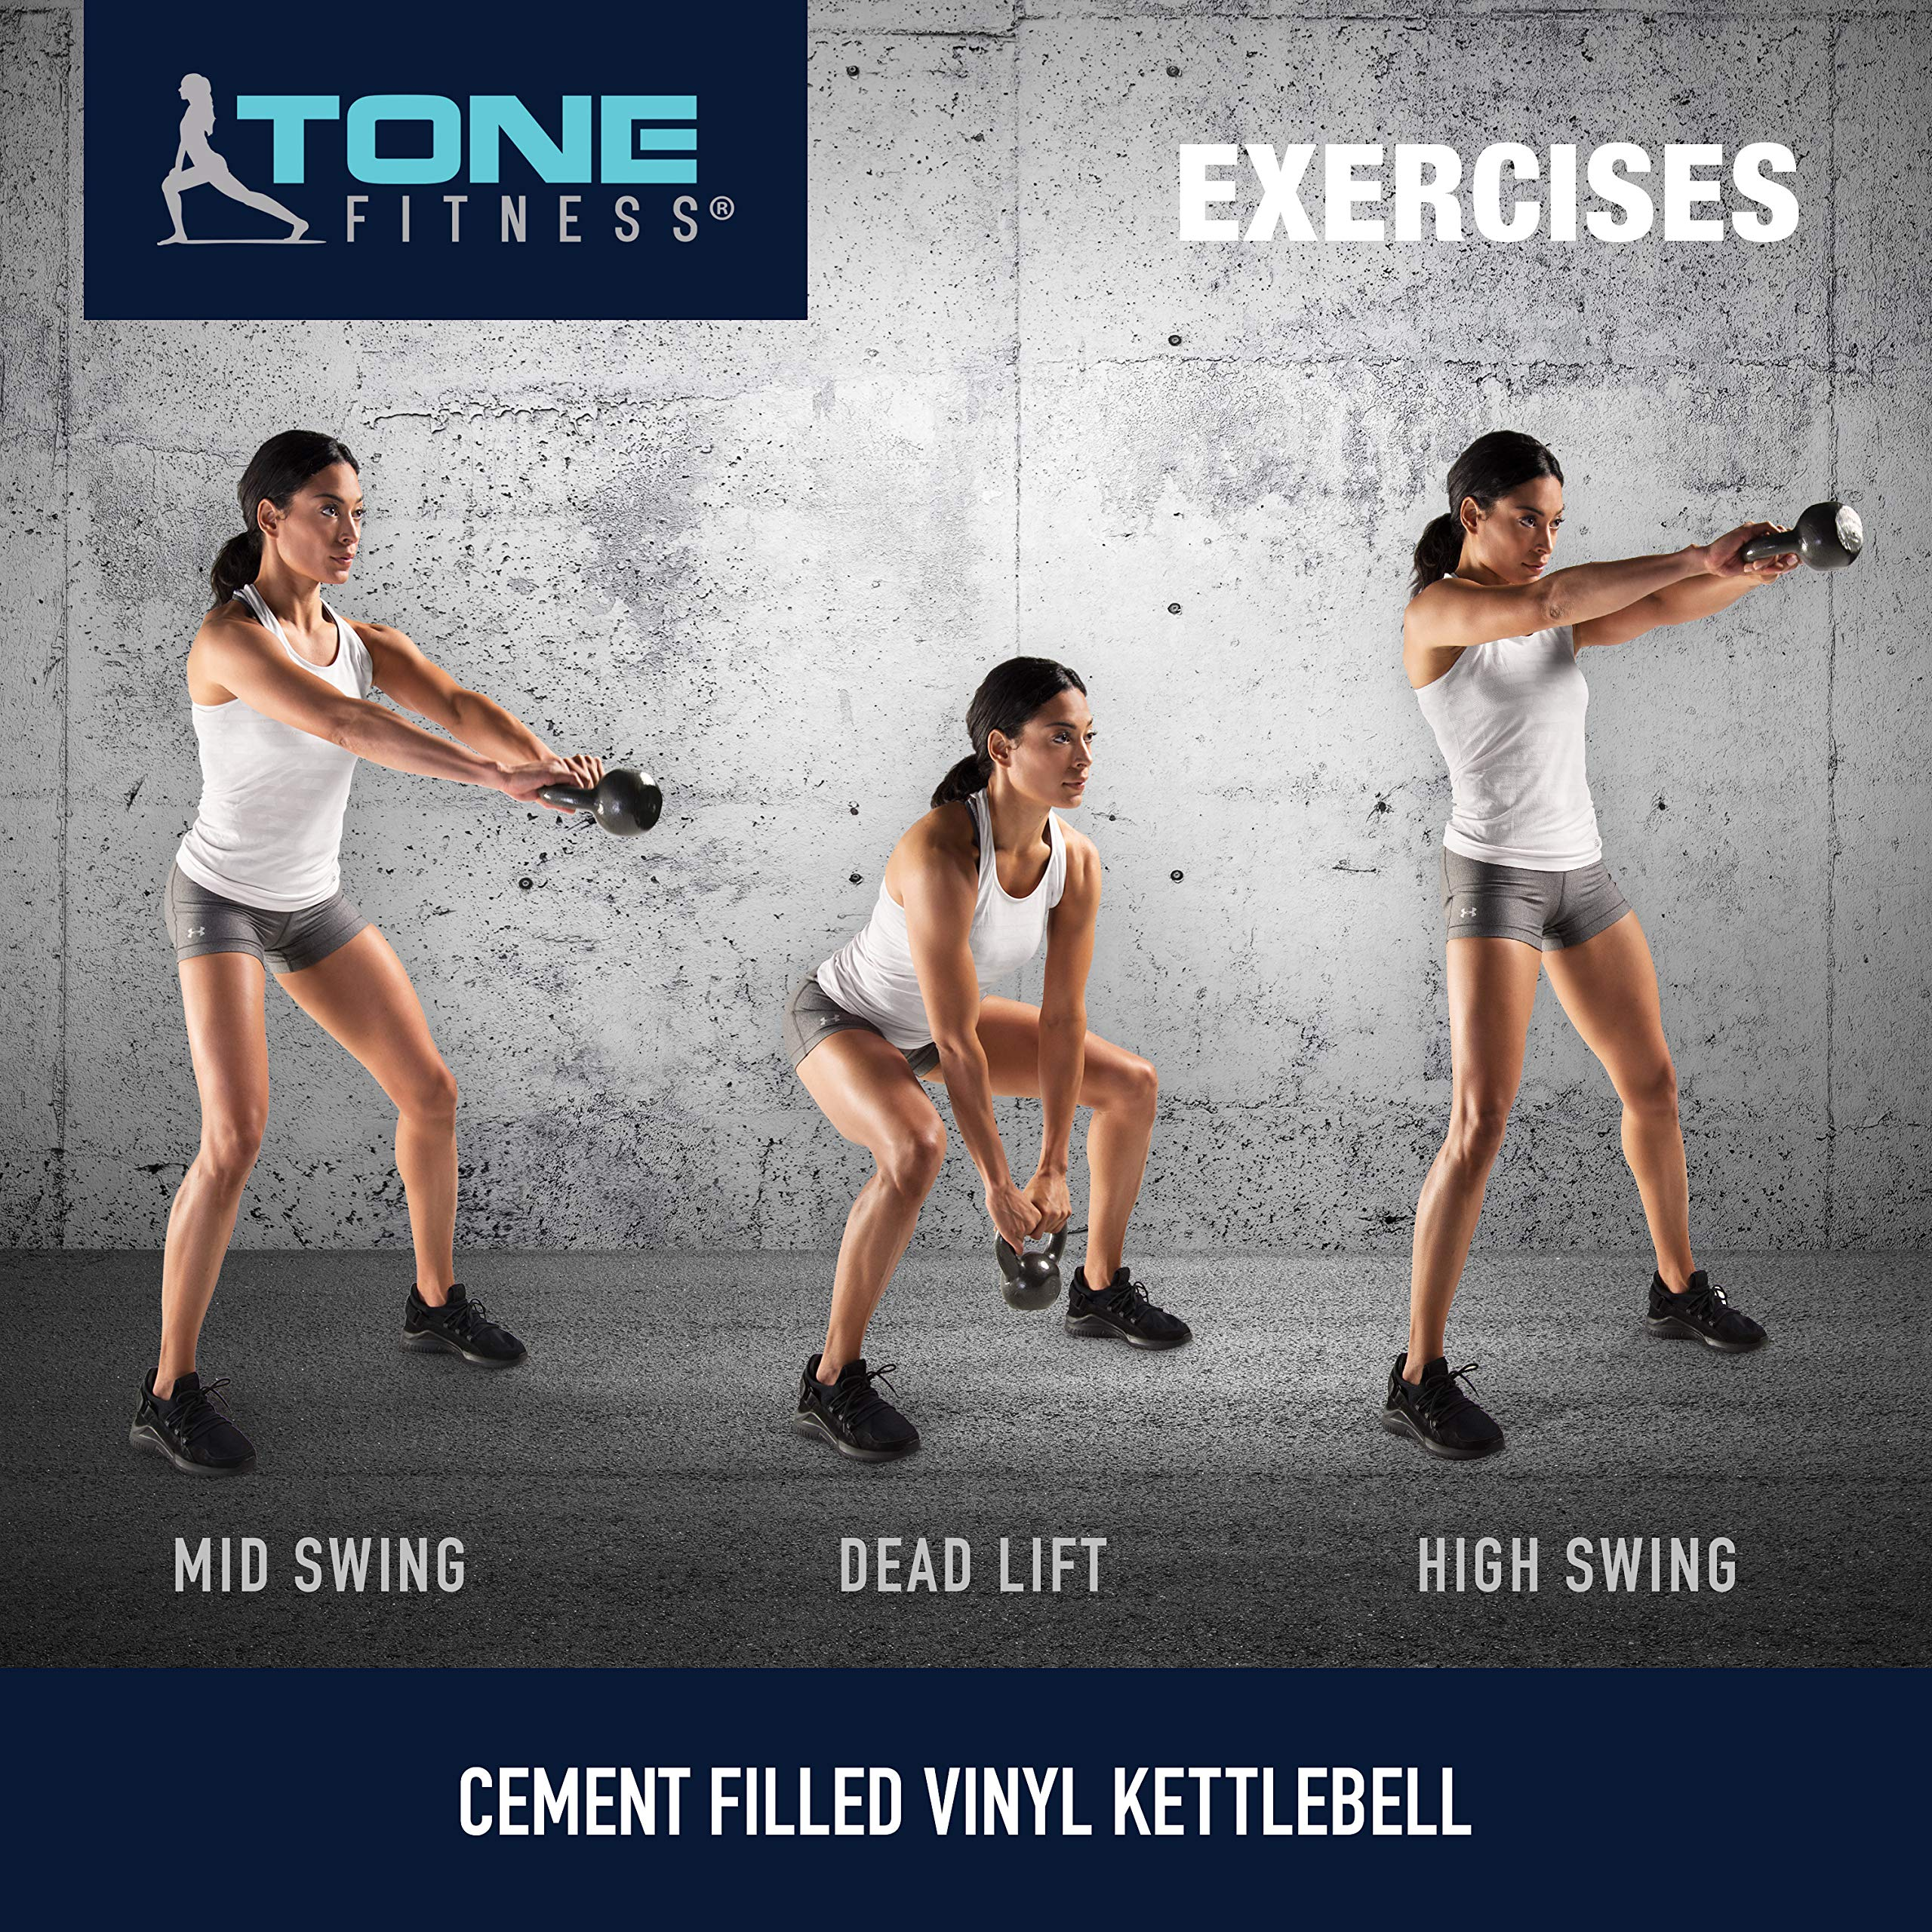 Tone Fitness Vinyl Kettlebell, 15-Pound, Orange by Tone Fitness (Image #8)